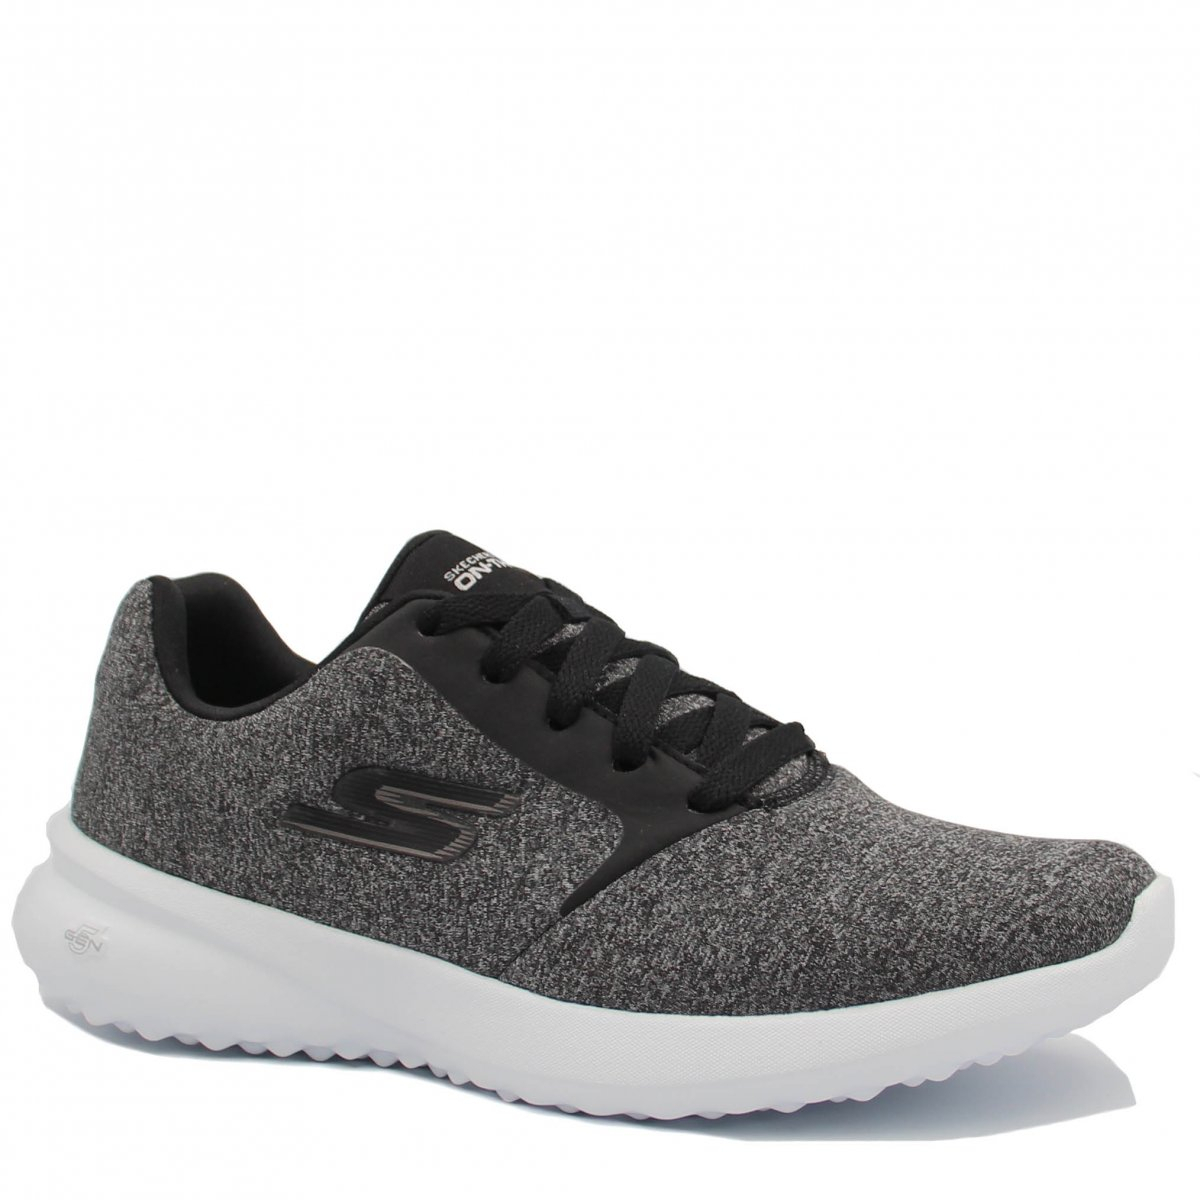 Tênis Skechers Performance City 3.0 Preto